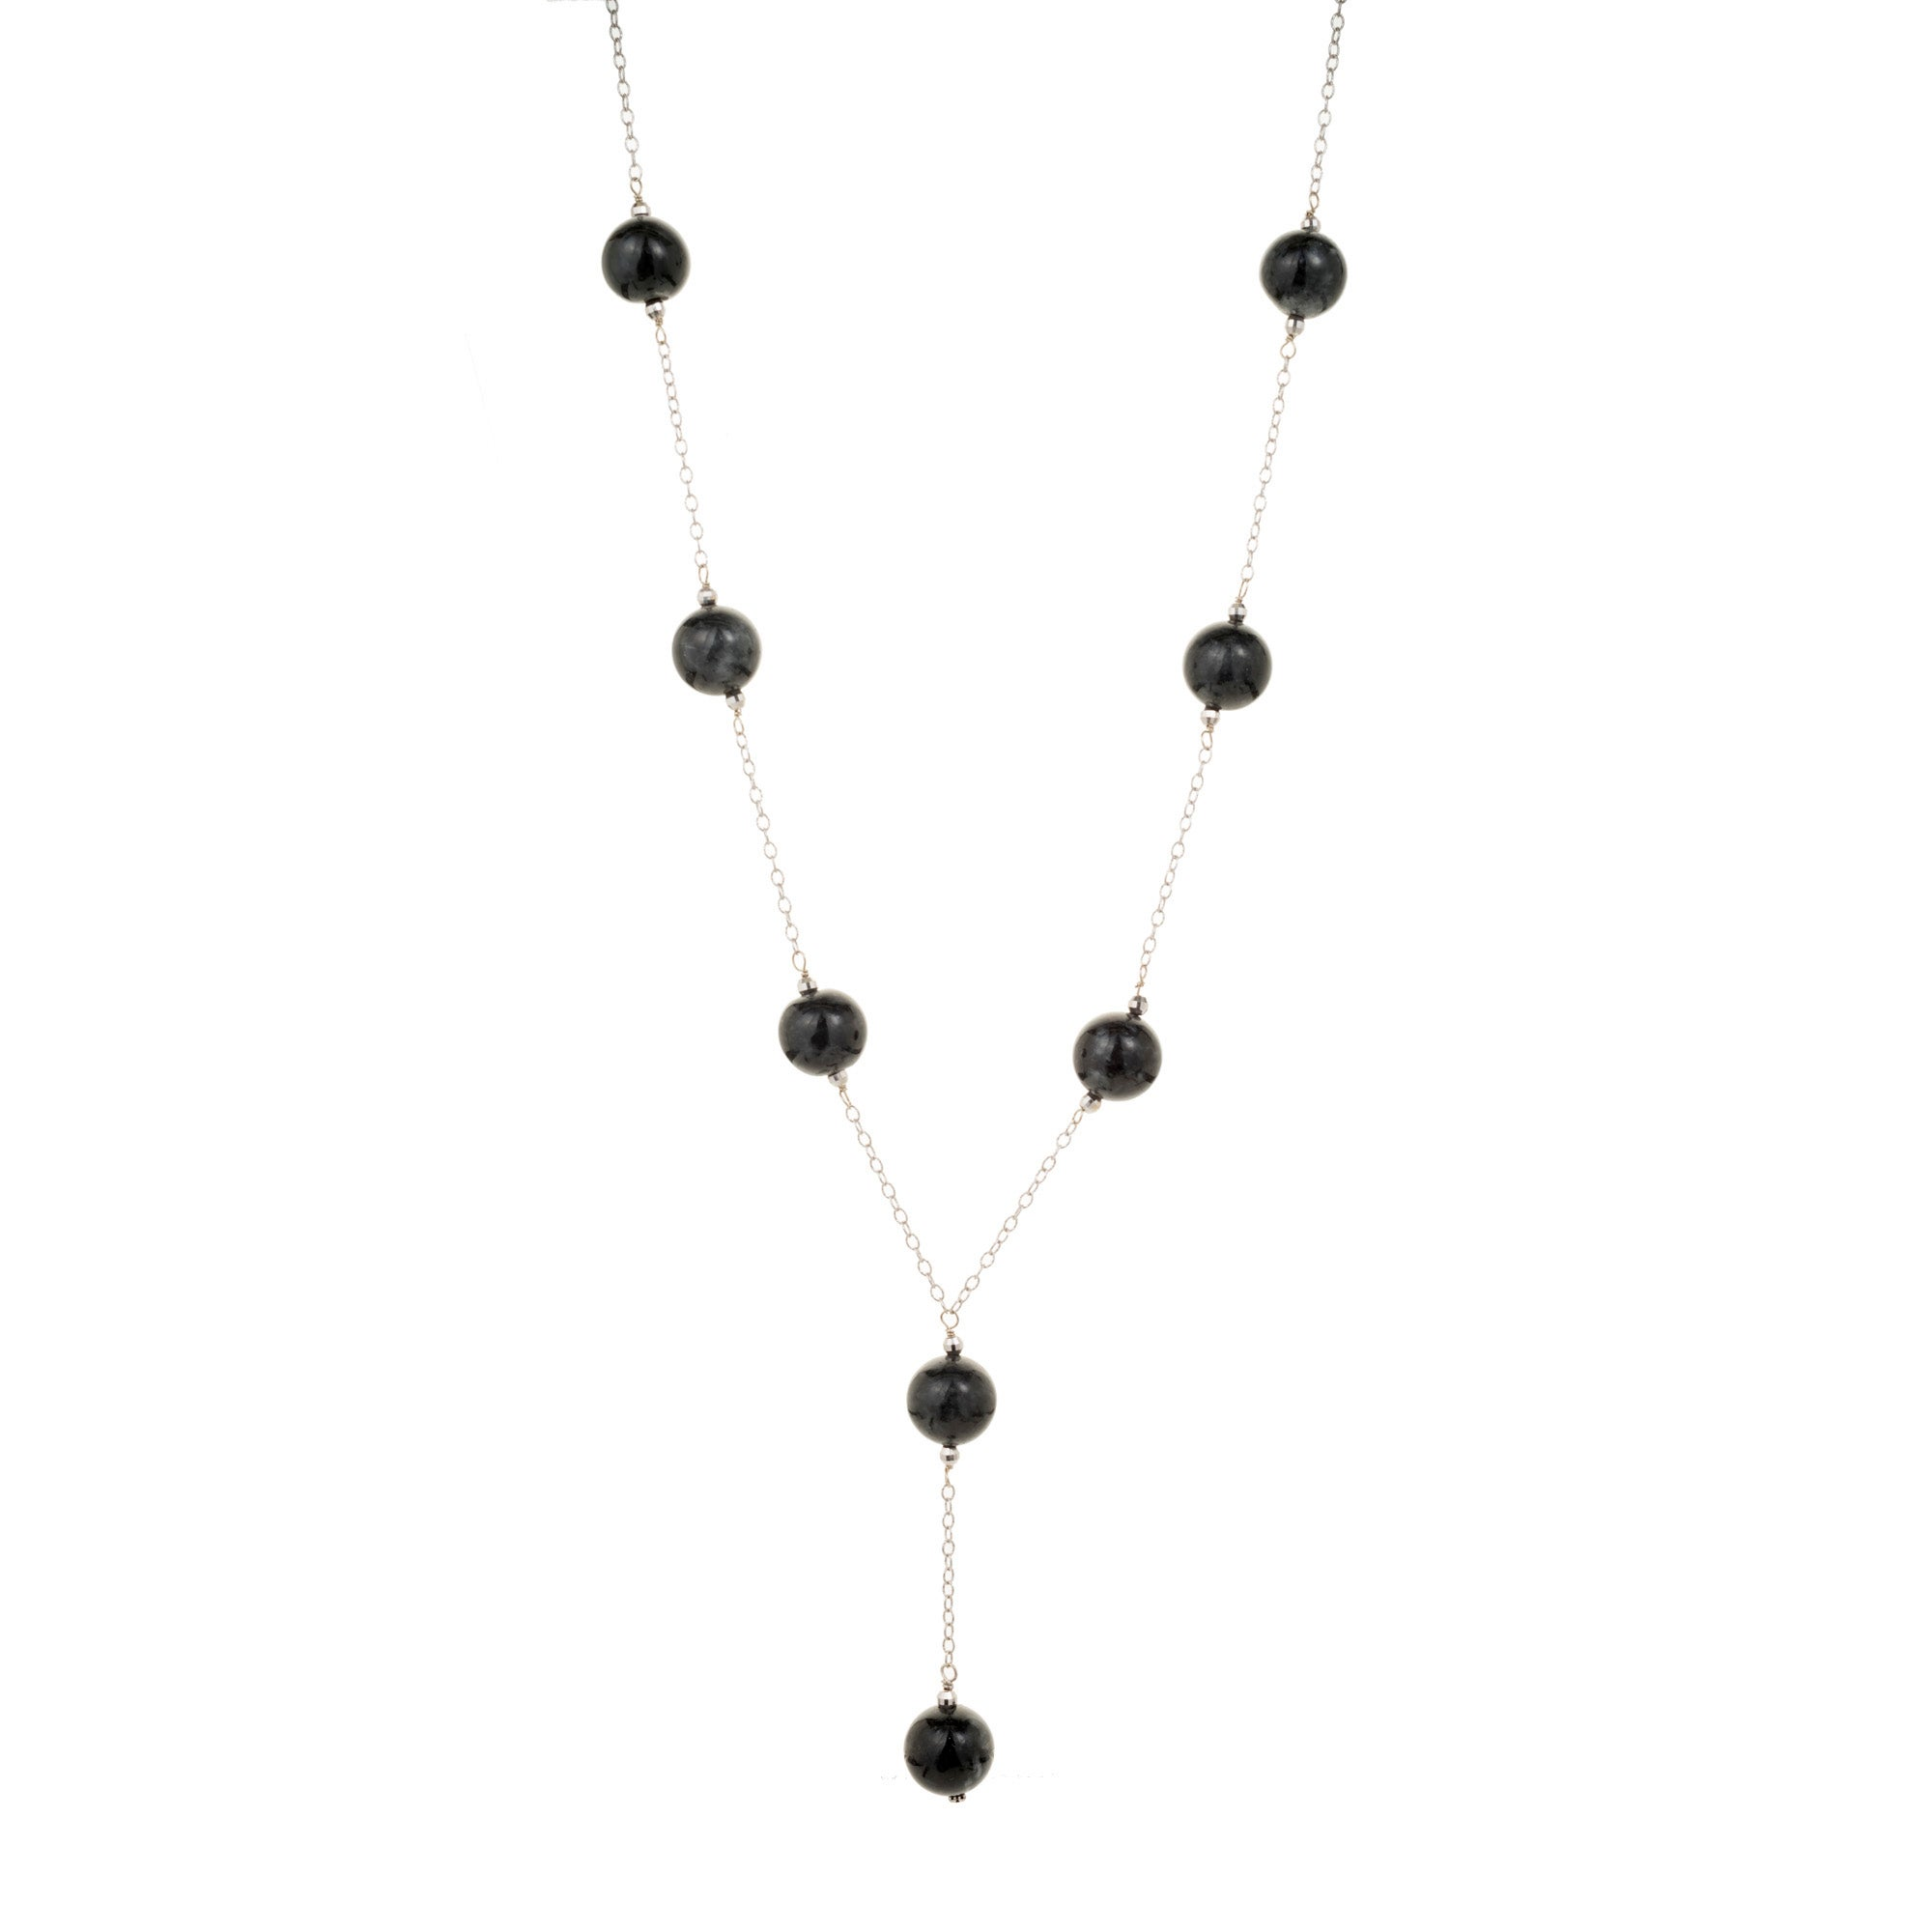 GIA Certified Natural Black Jadeite Jade Bead Gold Necklace